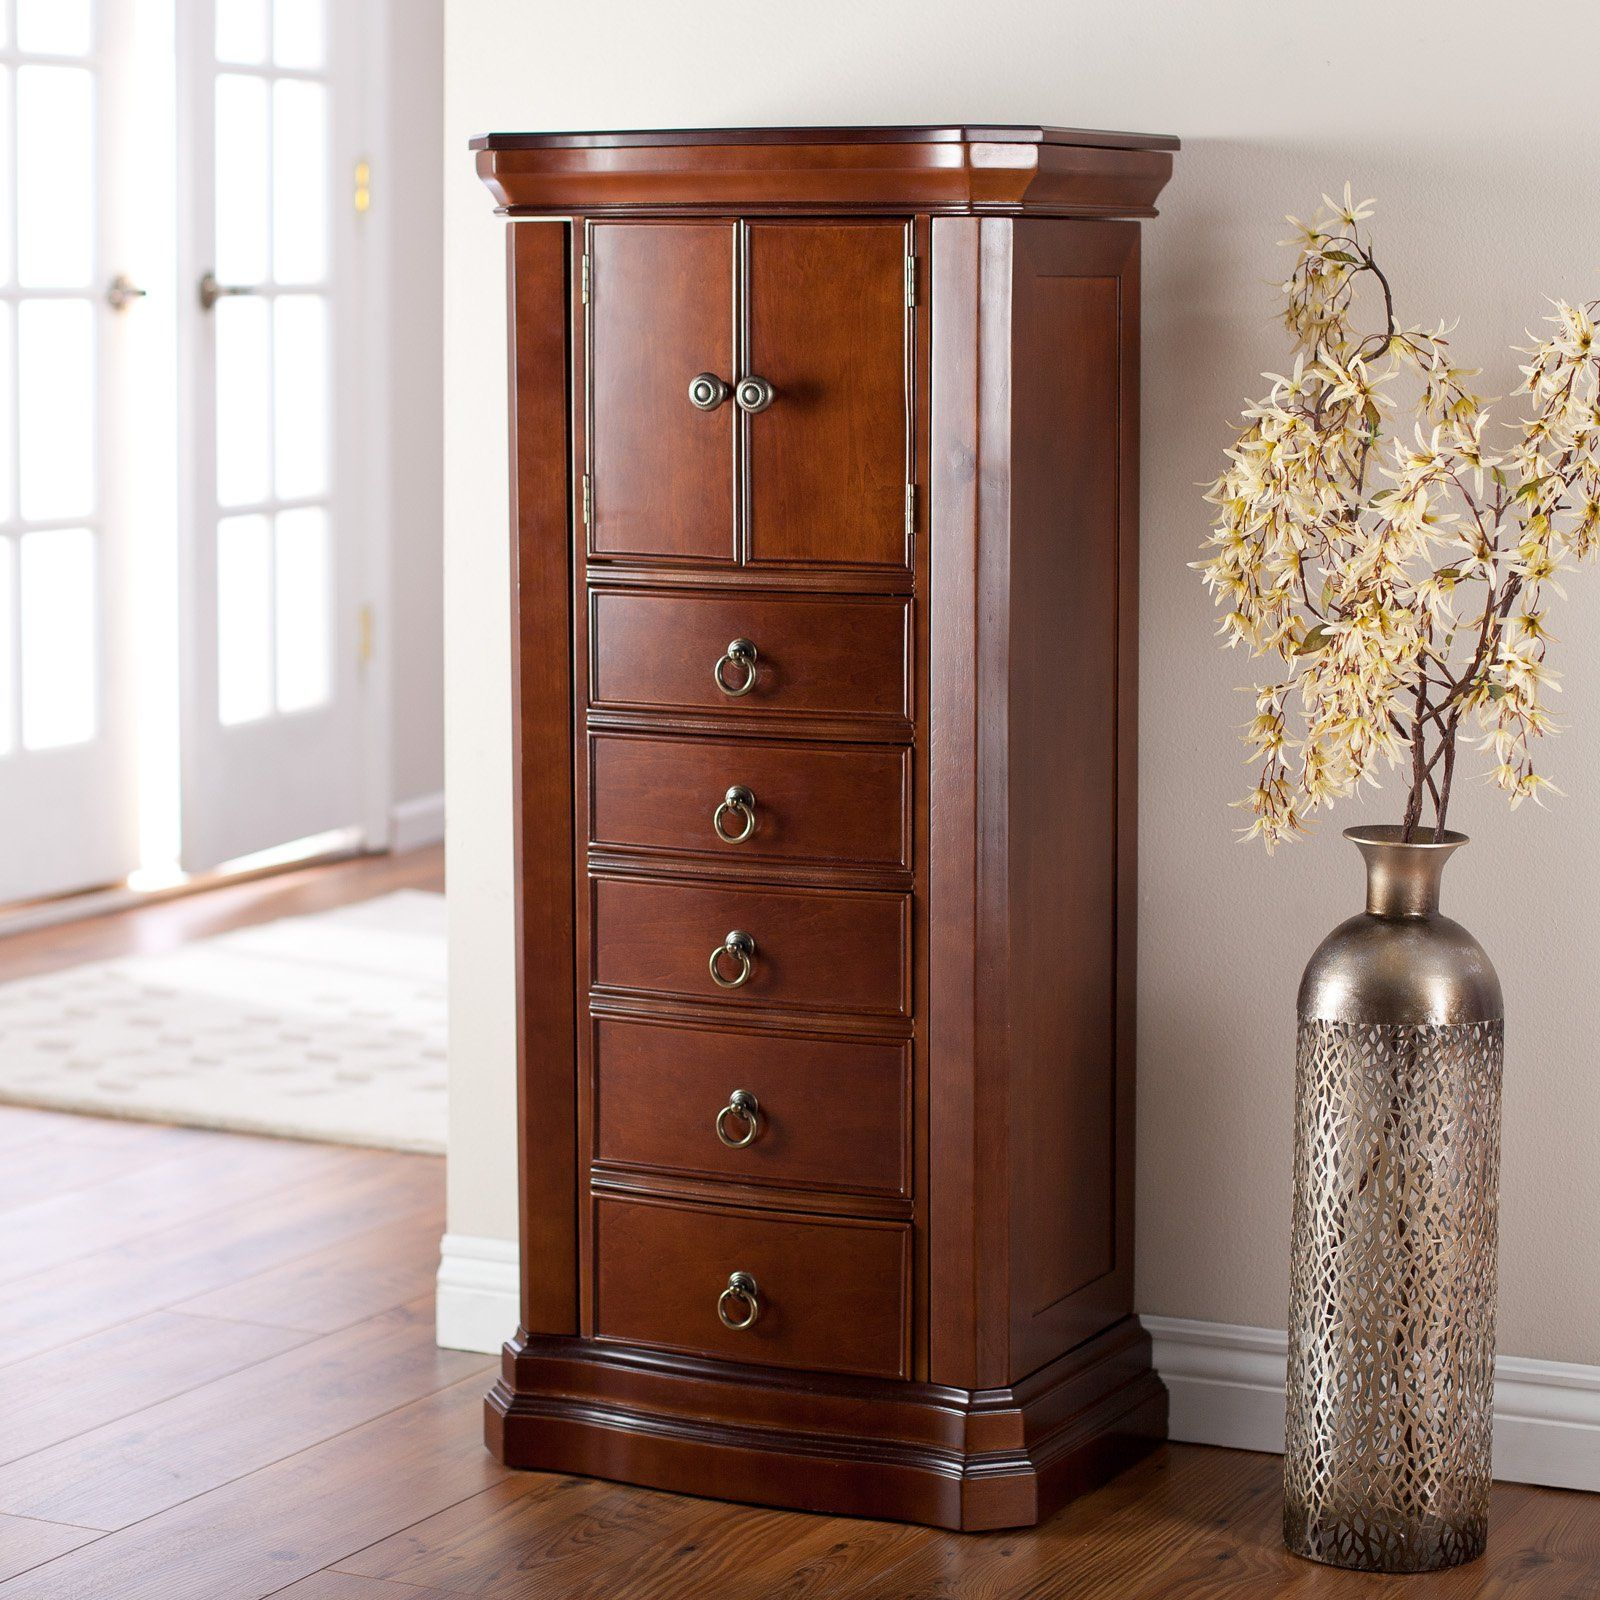 Traditional Brown over the Door Jewelry Armoire for Your Furniture